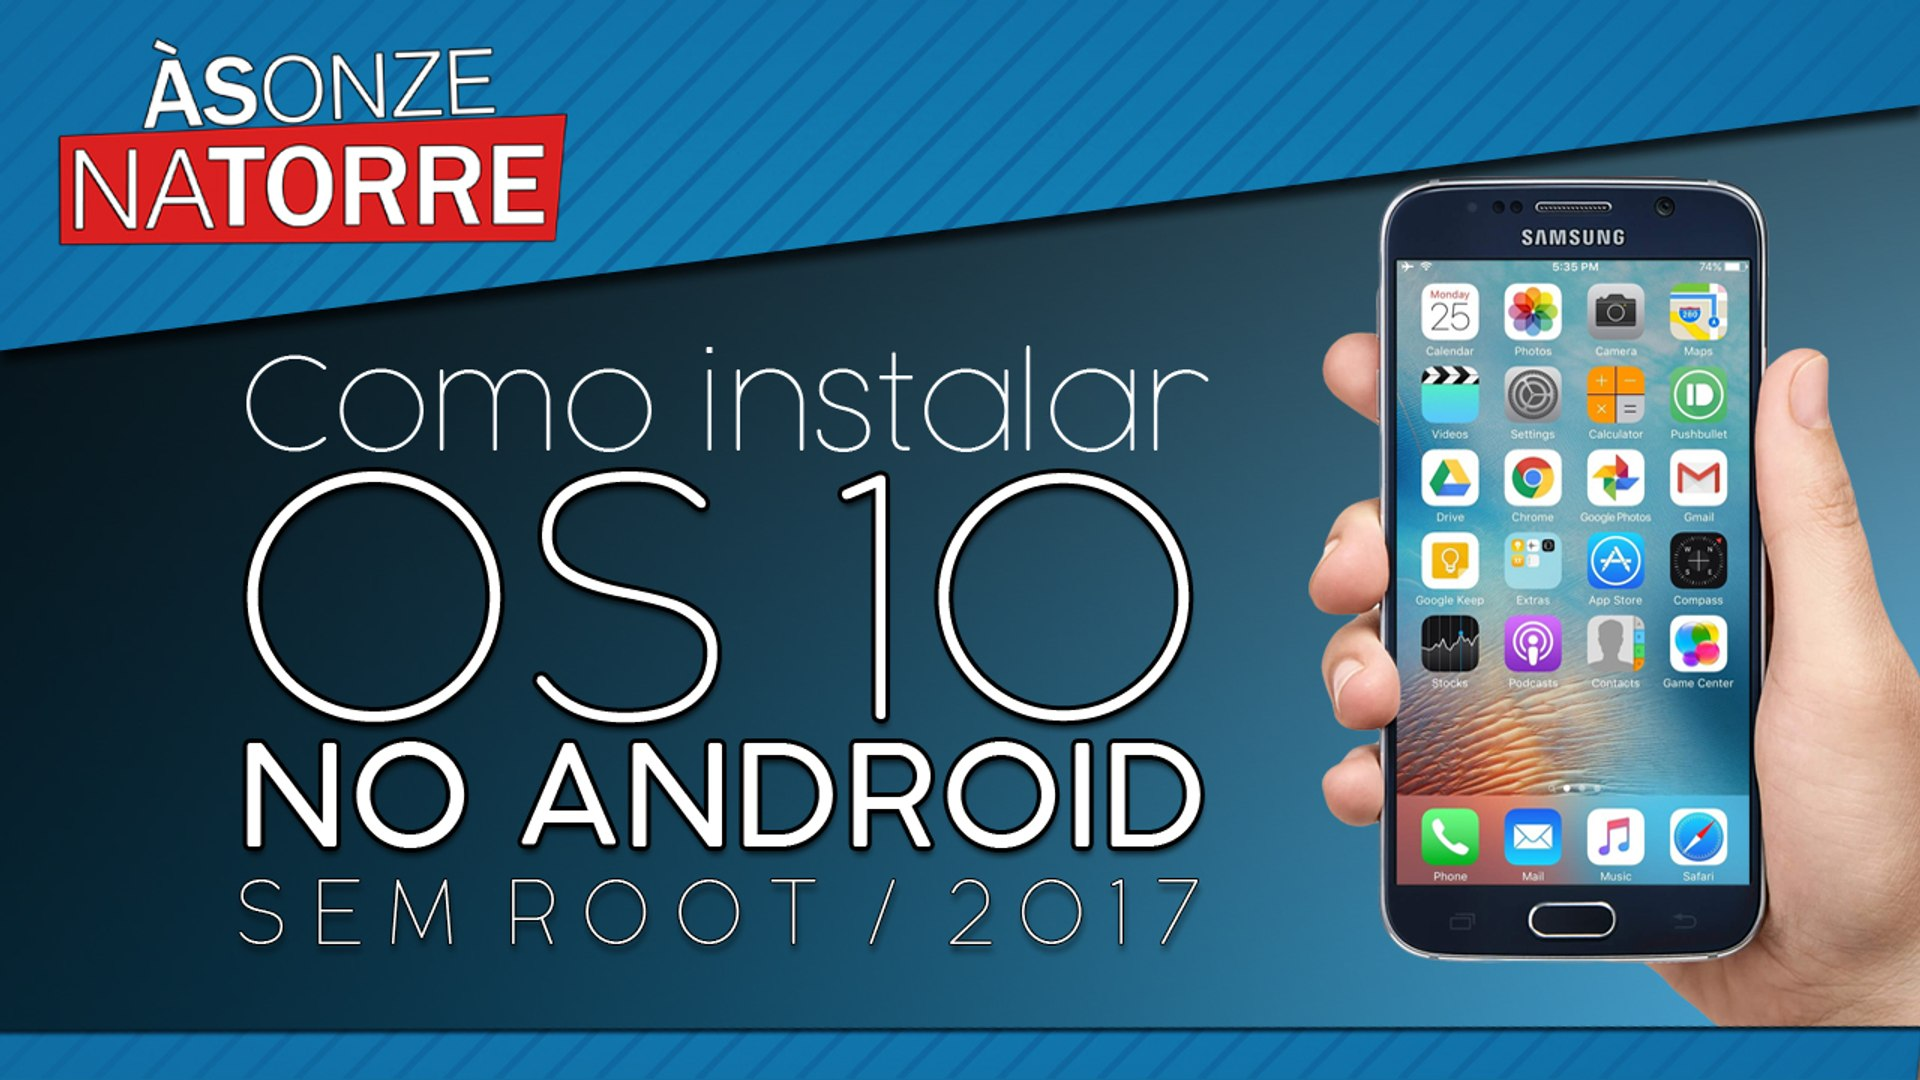 Como instalar OS 10 no Android (sem root) 2017   How to install OS 10 in Android (no root) 2017